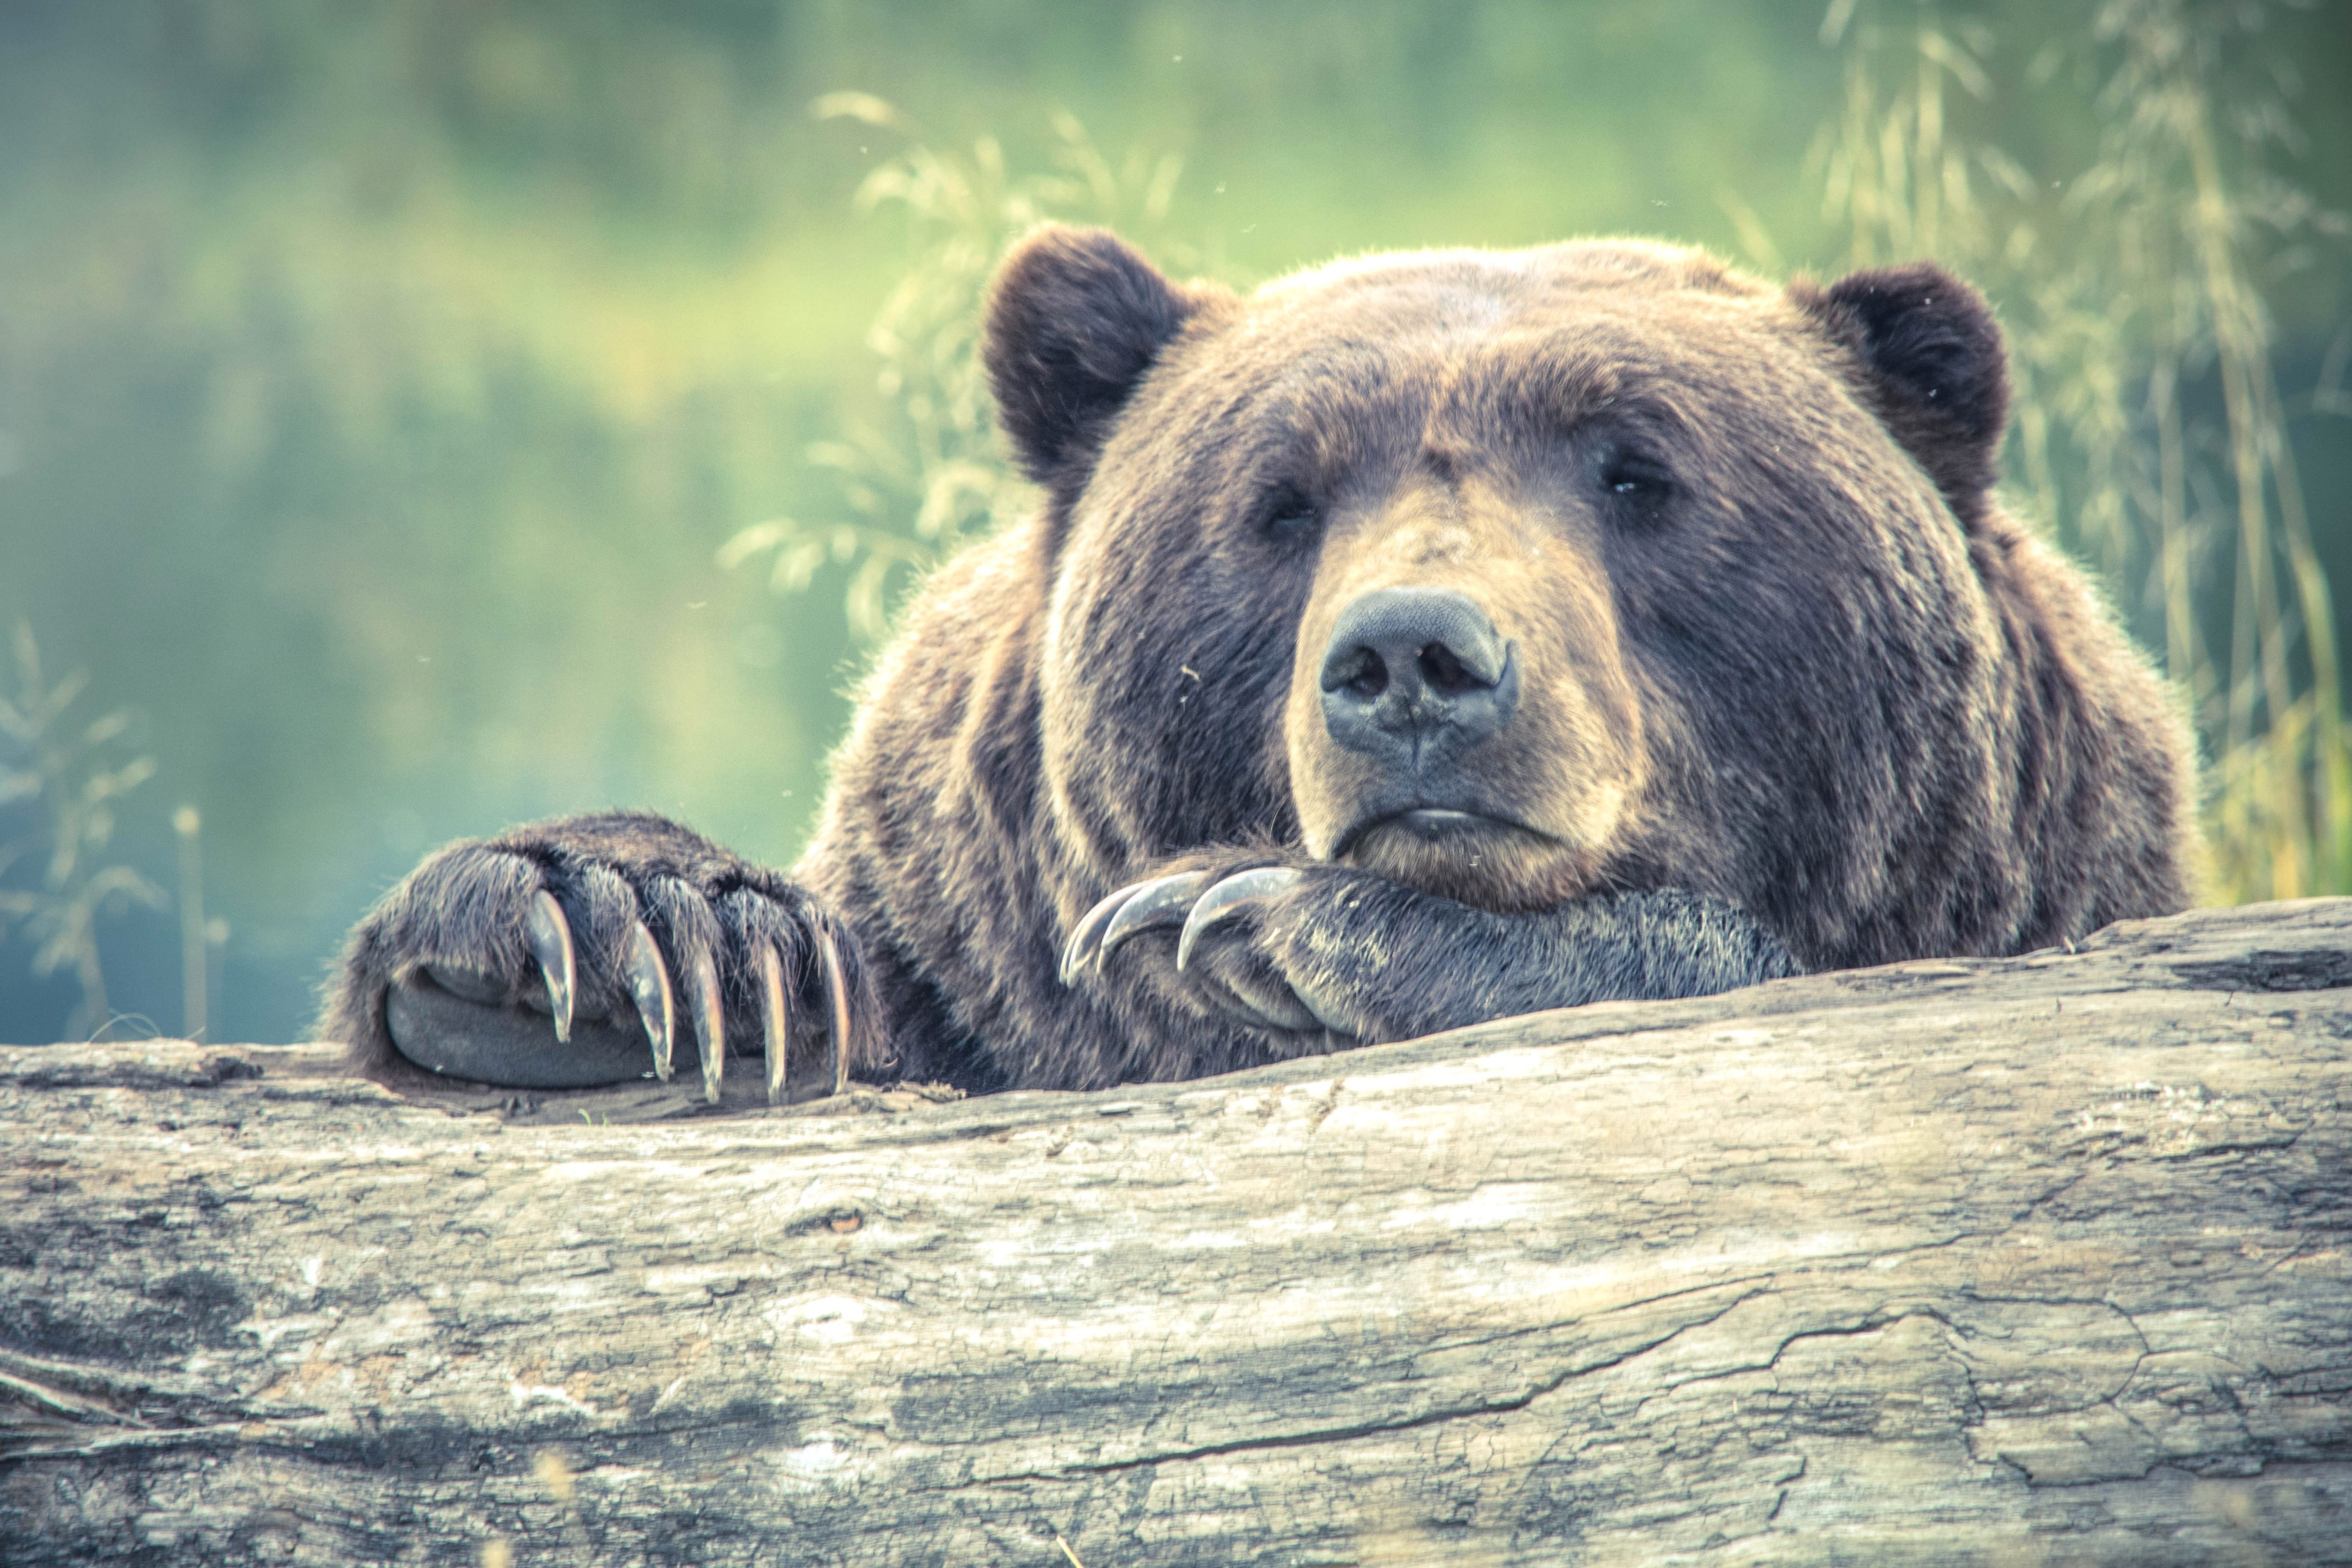 Free picture: brown bear, forest, carnivore, animal